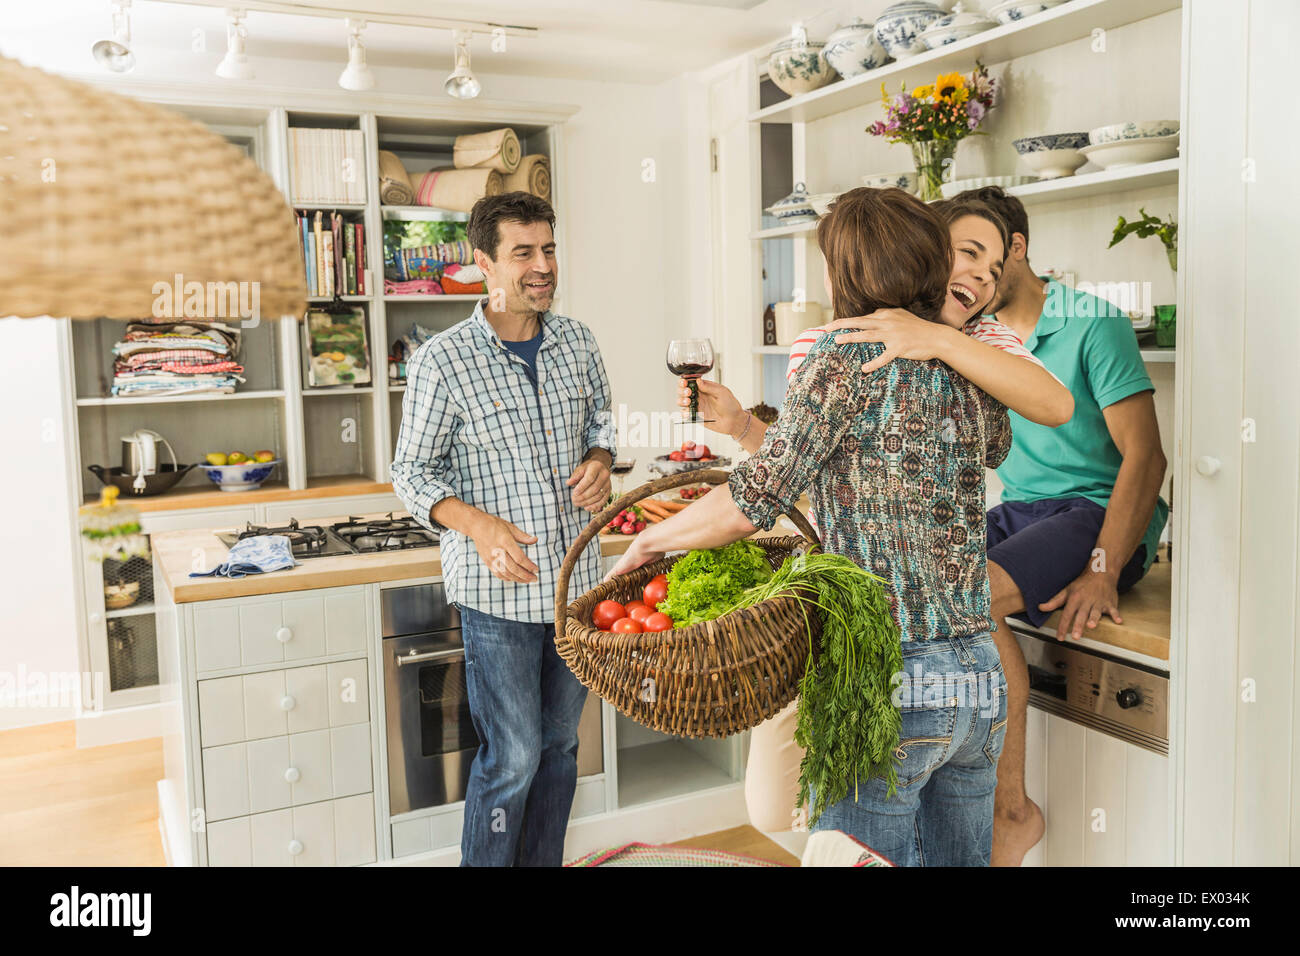 Four adult friends greeting in kitchen - Stock Image